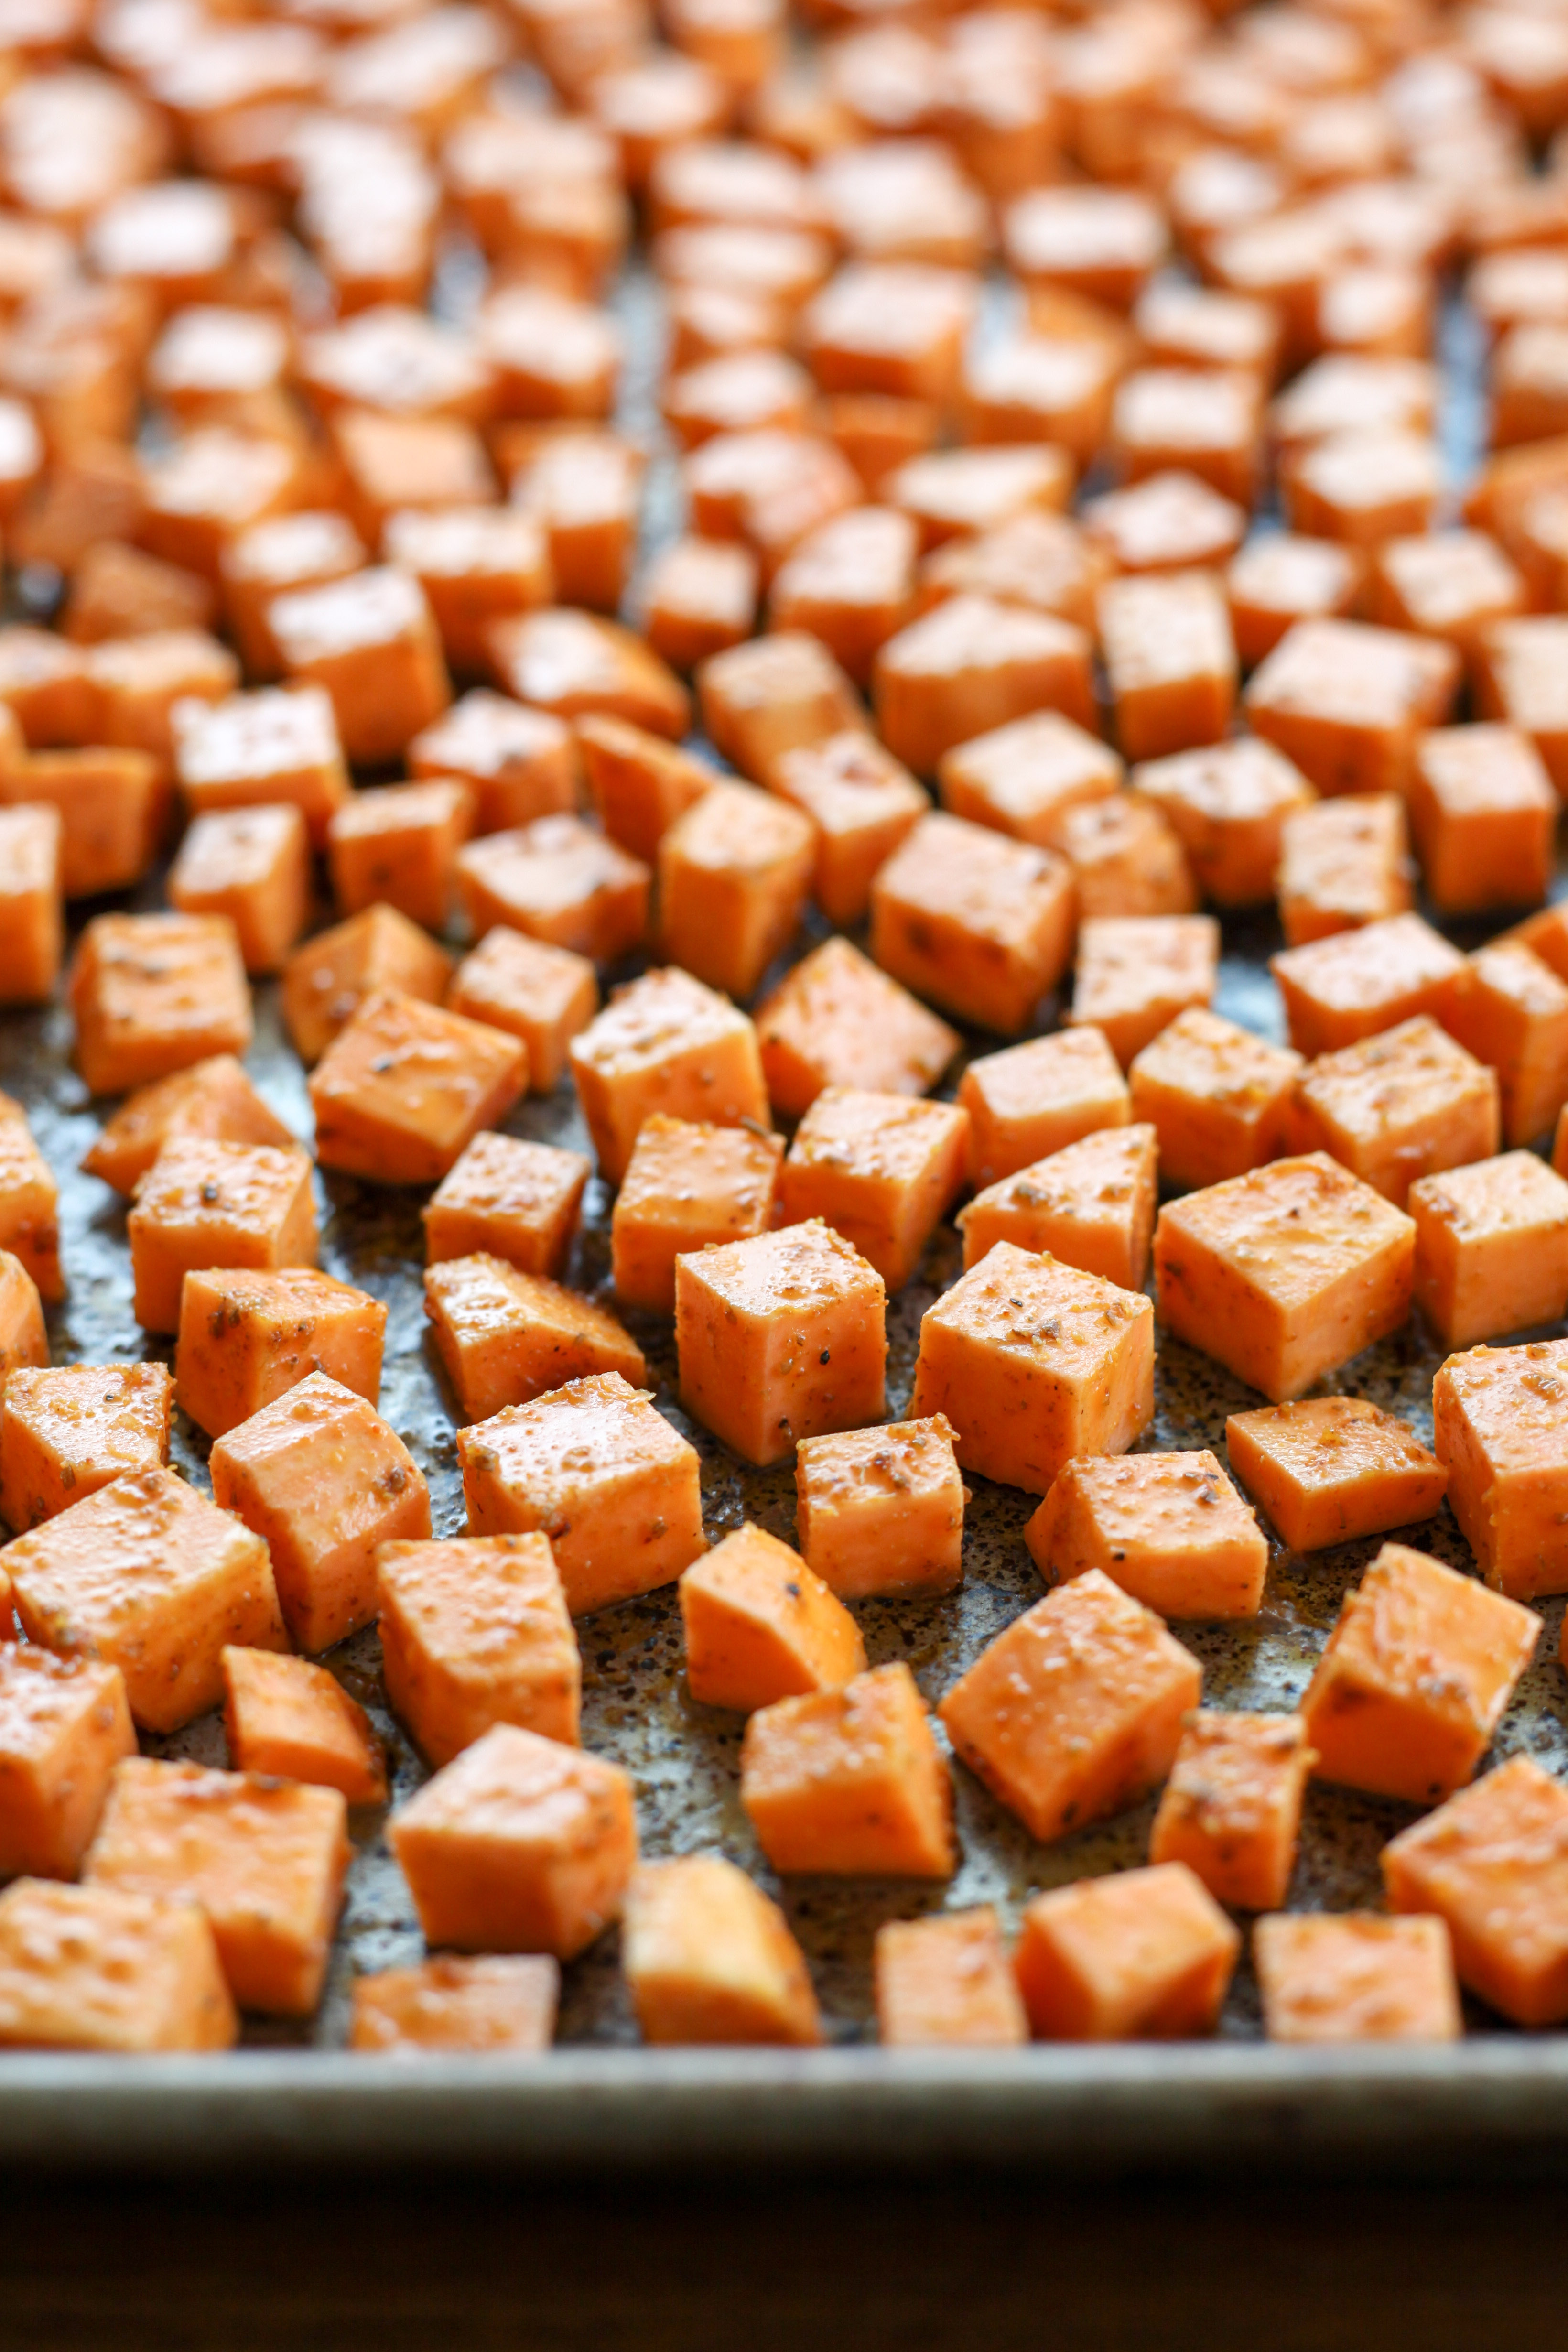 Diced spiced sweet potatoes, ready to be roasted